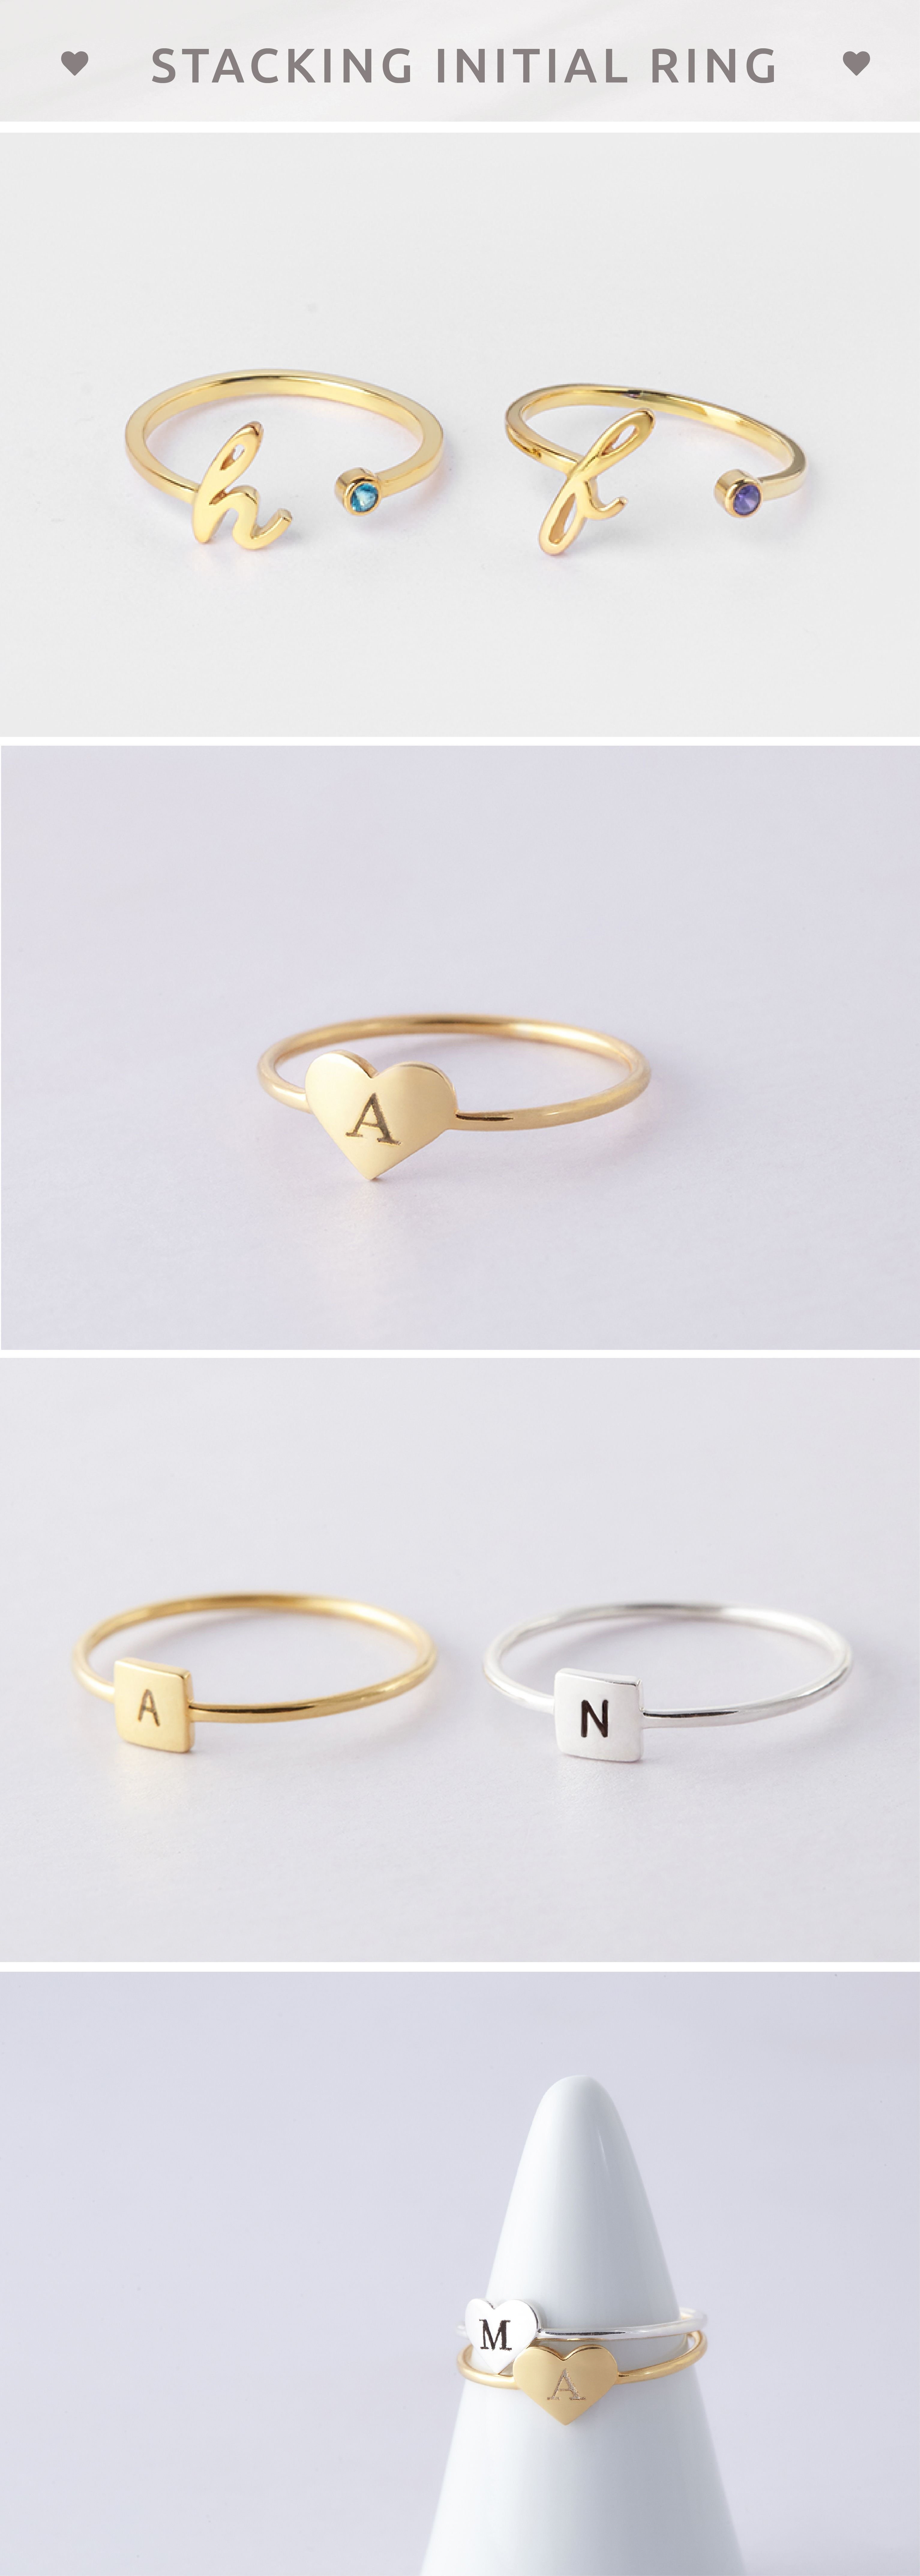 Initial Rings • Cursive Initial Ring With Birthstone • Heart Ring